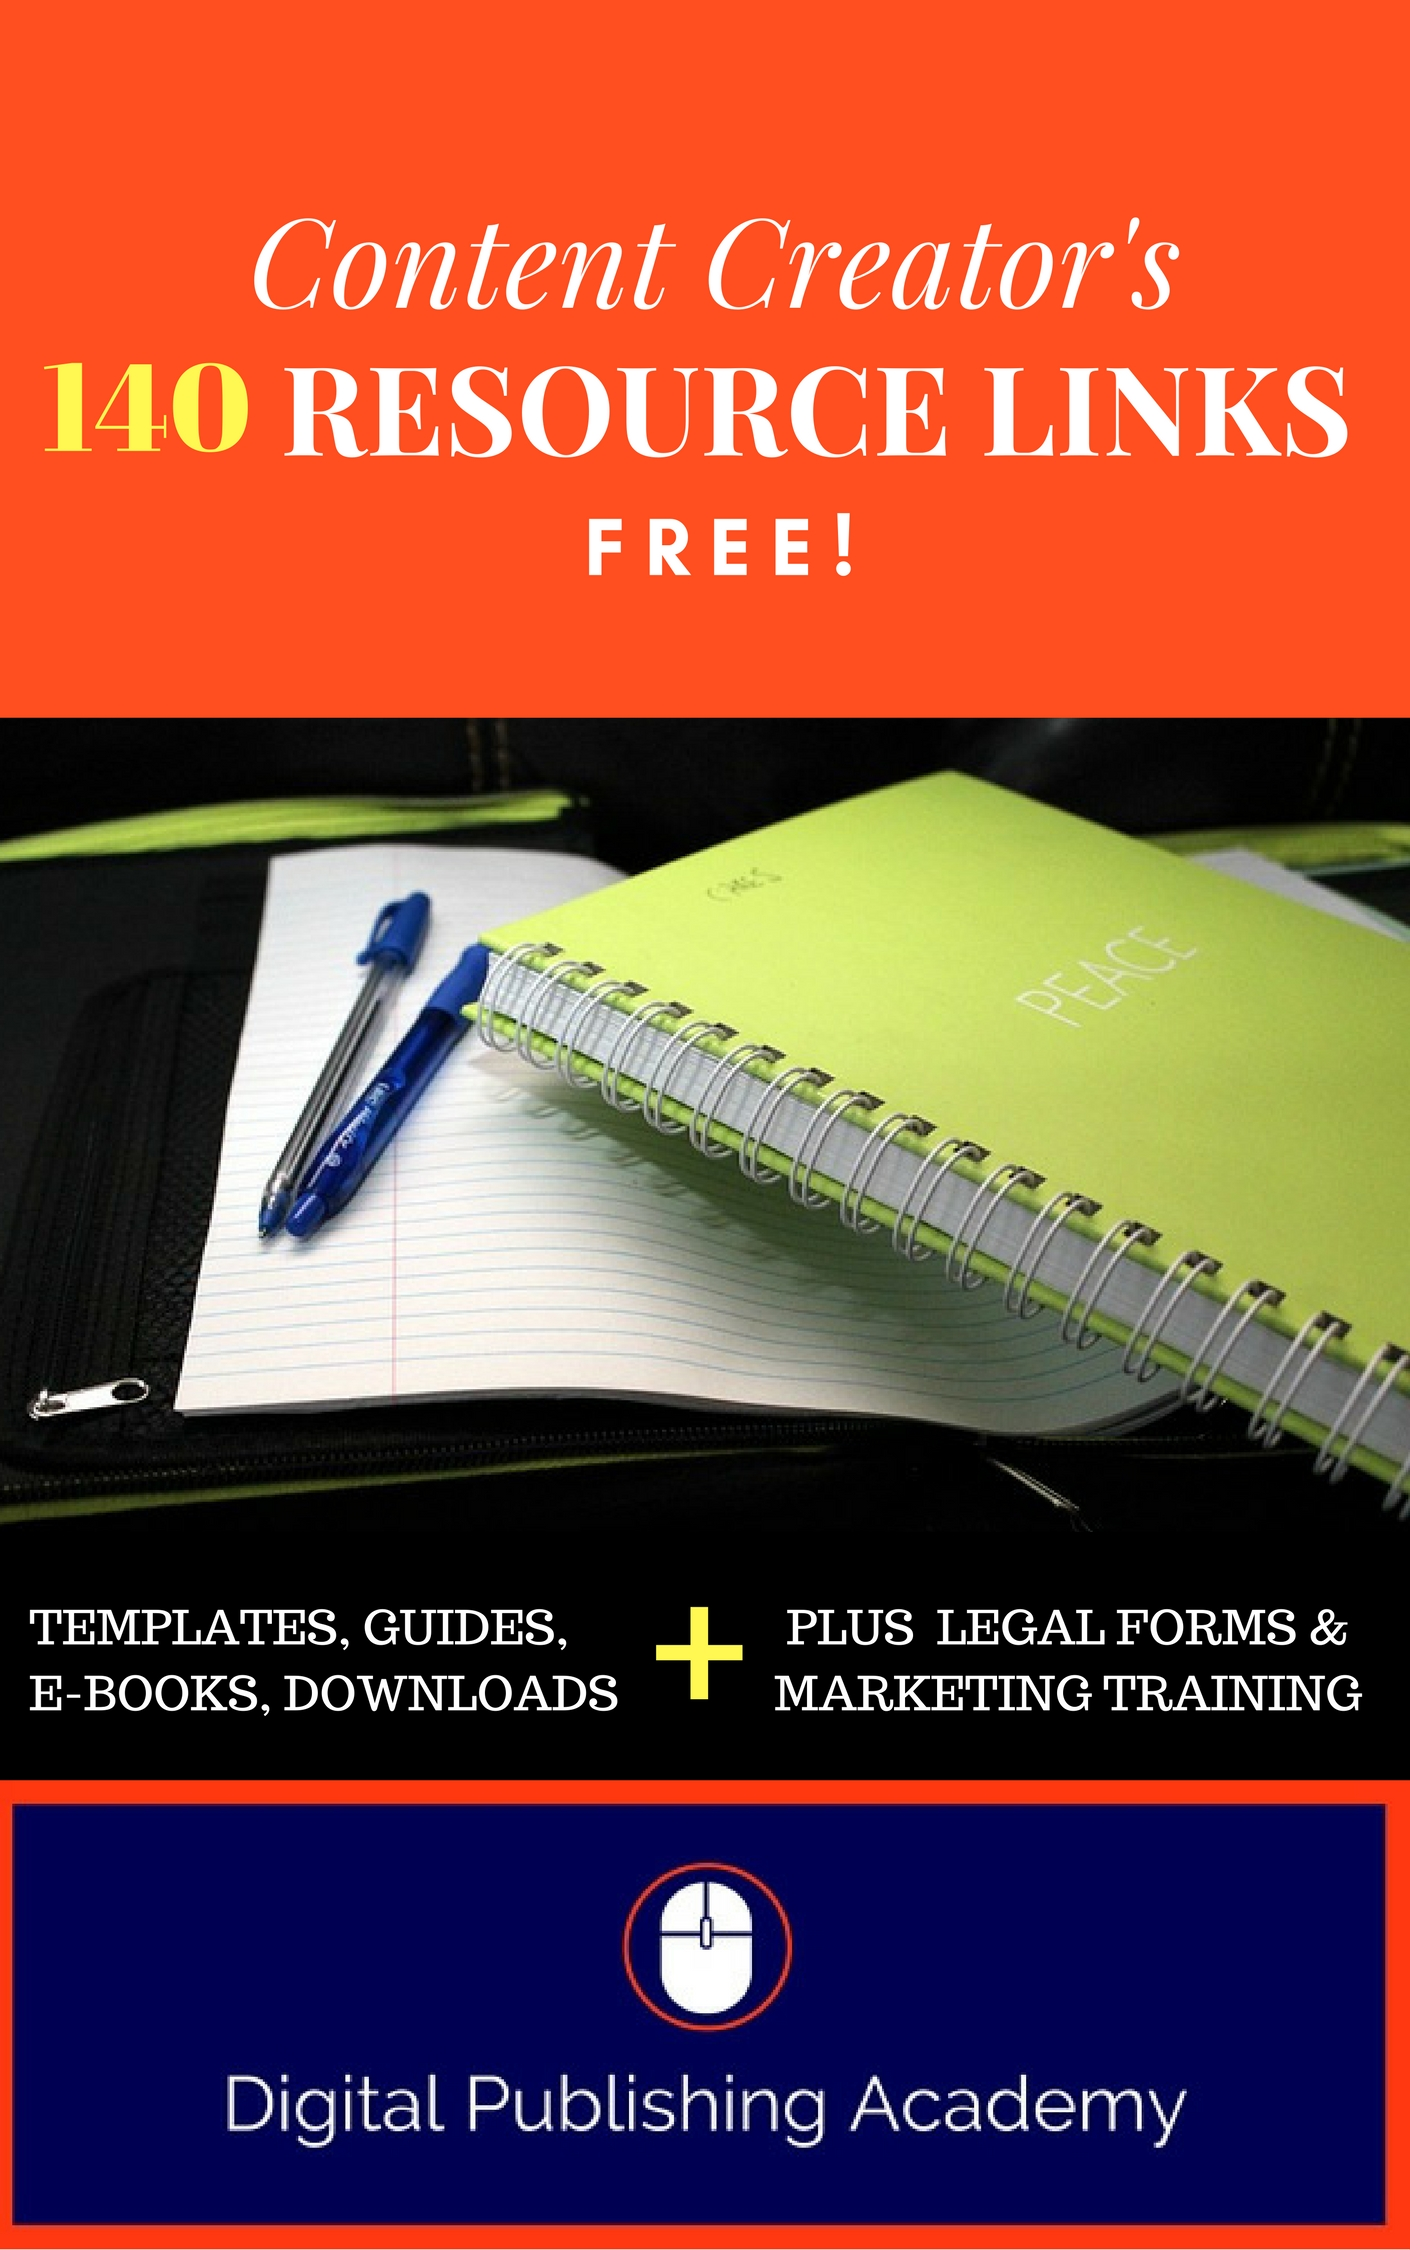 Content Creators and Marketers: 140 Links to the BEST FREE Resources for You